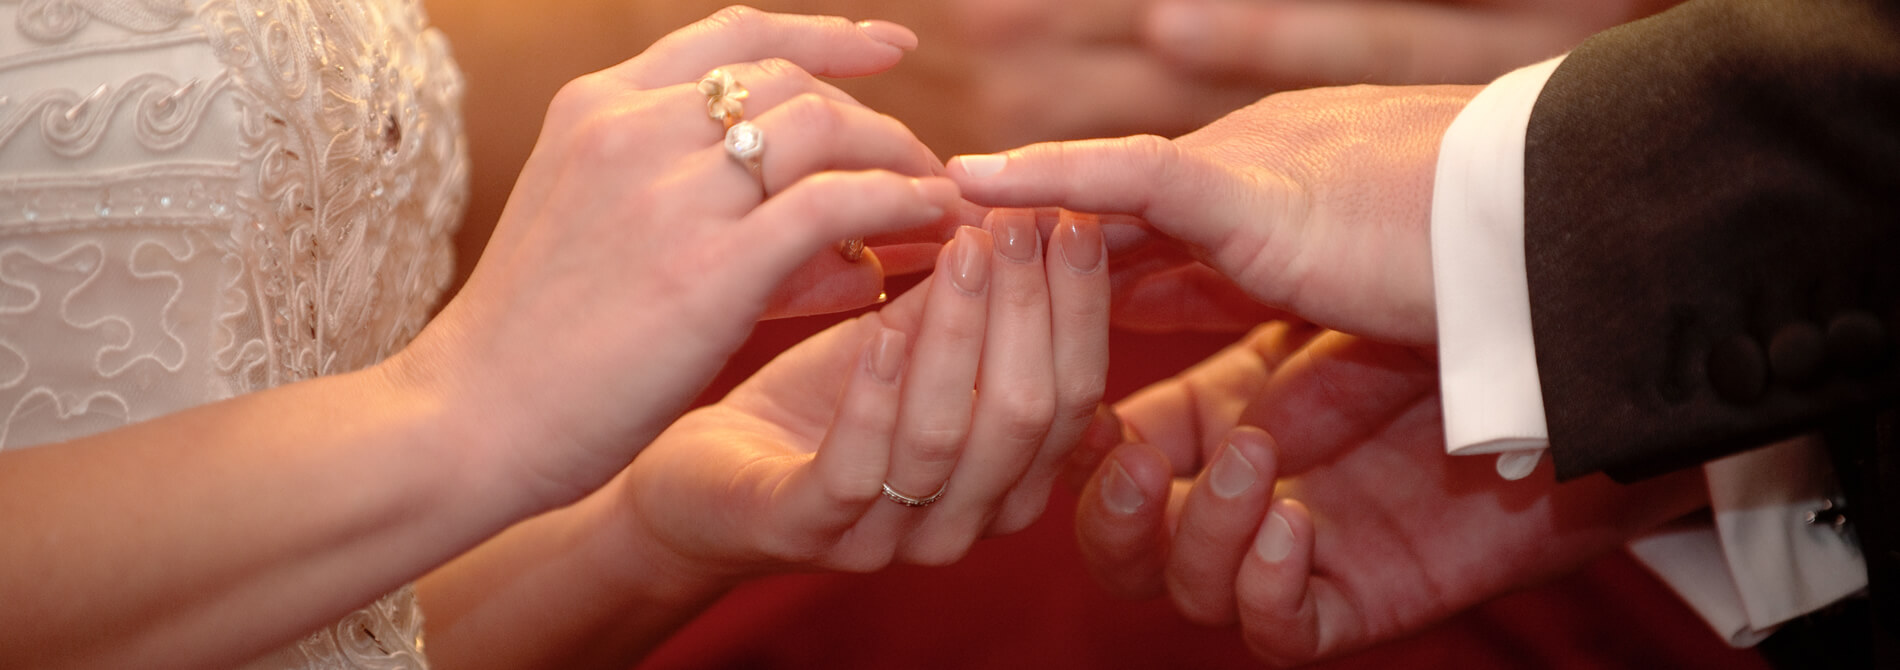 View of hands exchanging wedding rings